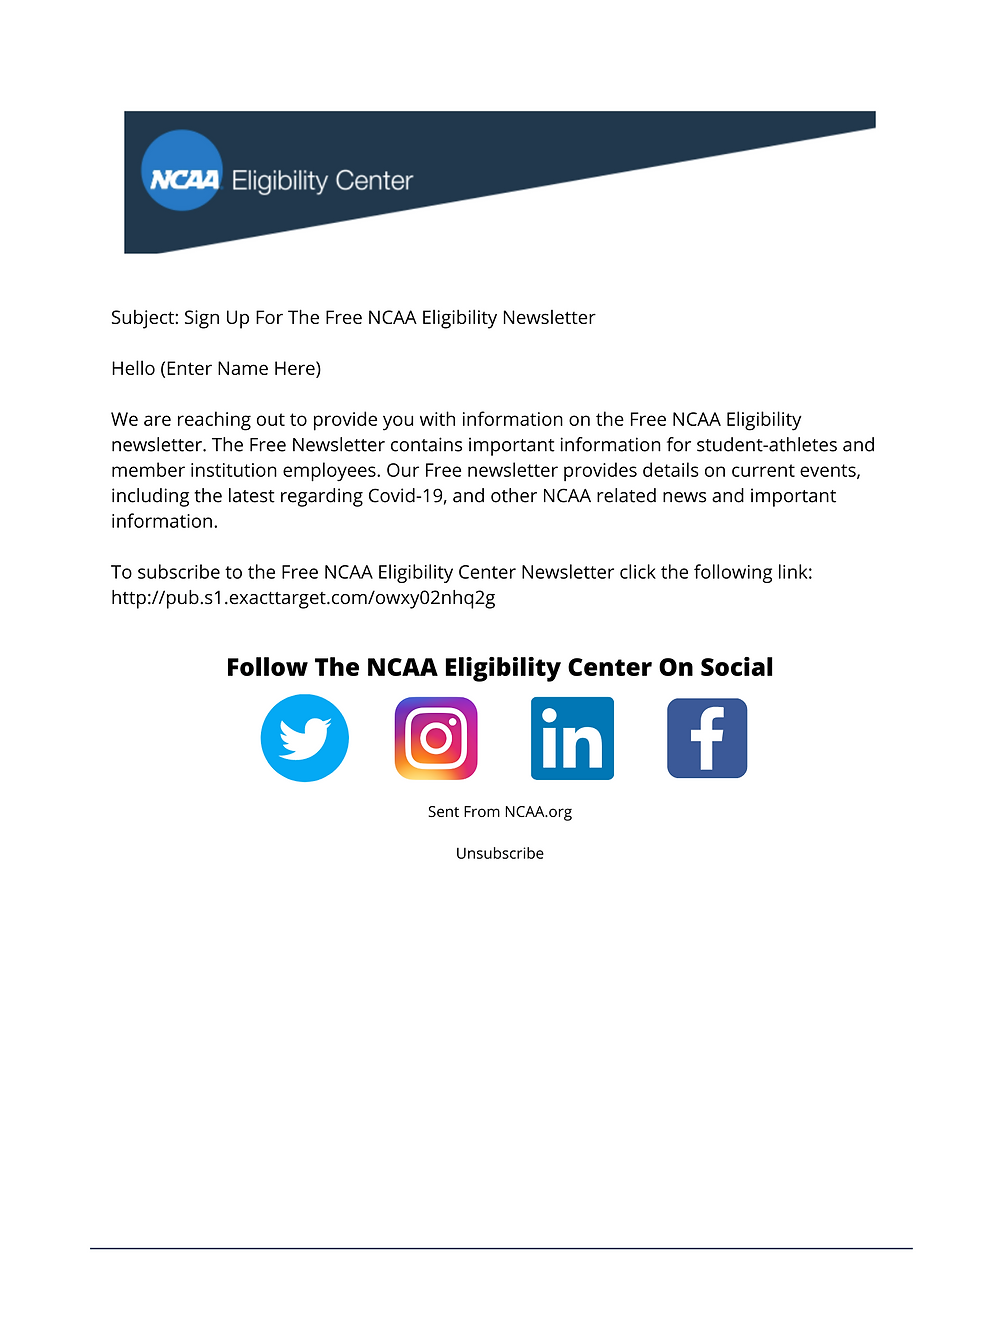 NCAA Email Marketing Template